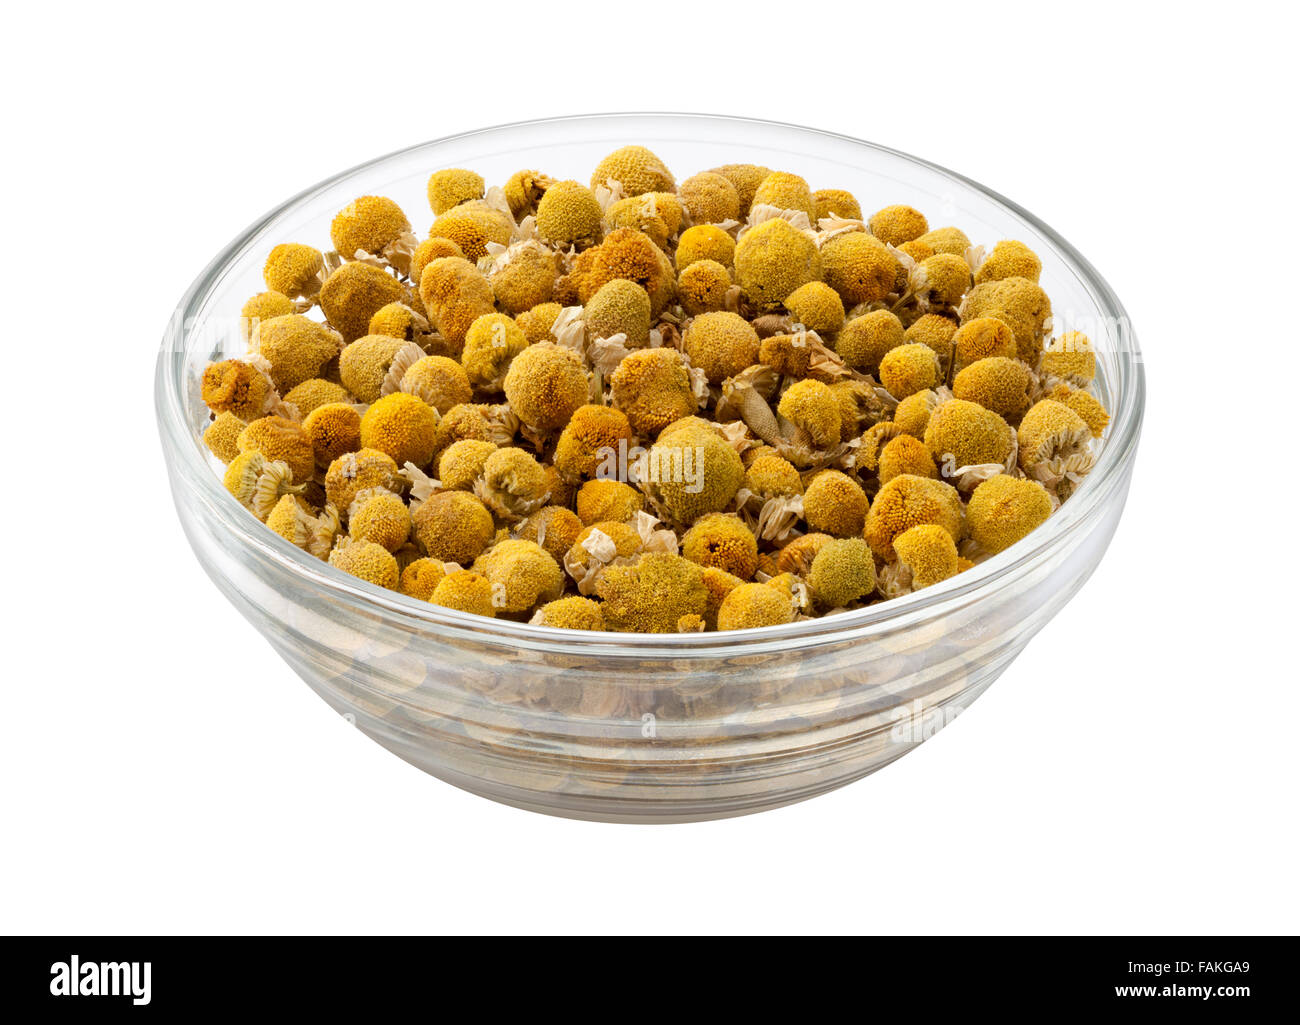 Loose Leaf Chamomile in a Glass Bowl - Stock Image